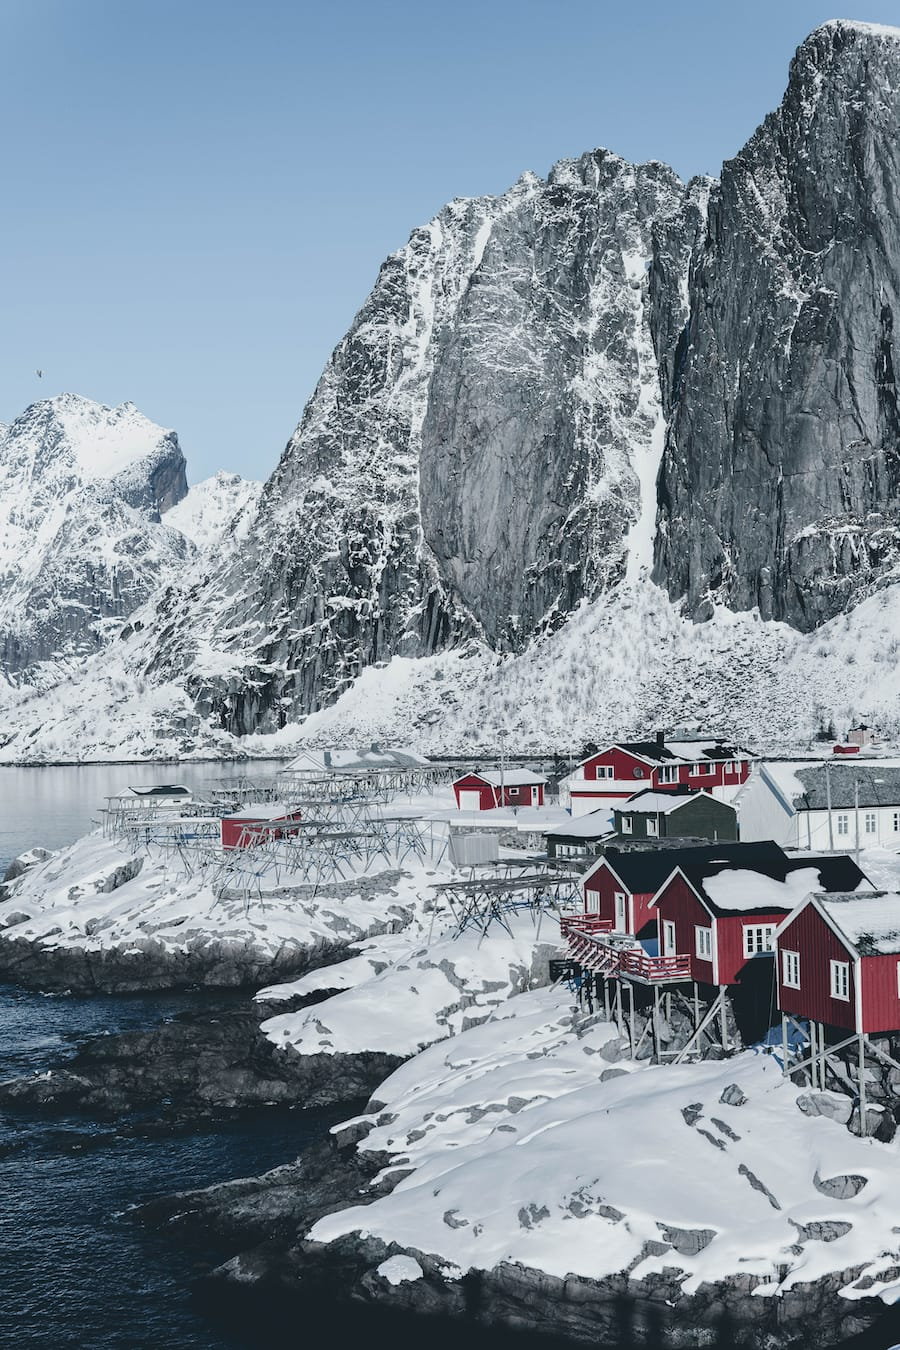 Rorbuer in Hamnøy: Best Rorbuer in Lofoten: 5 awesome Lofoten Rorbuer you should book for your trip! Lofoten Cabins / Lofoten Rorbu / Where to stay in the Lofoten Islands